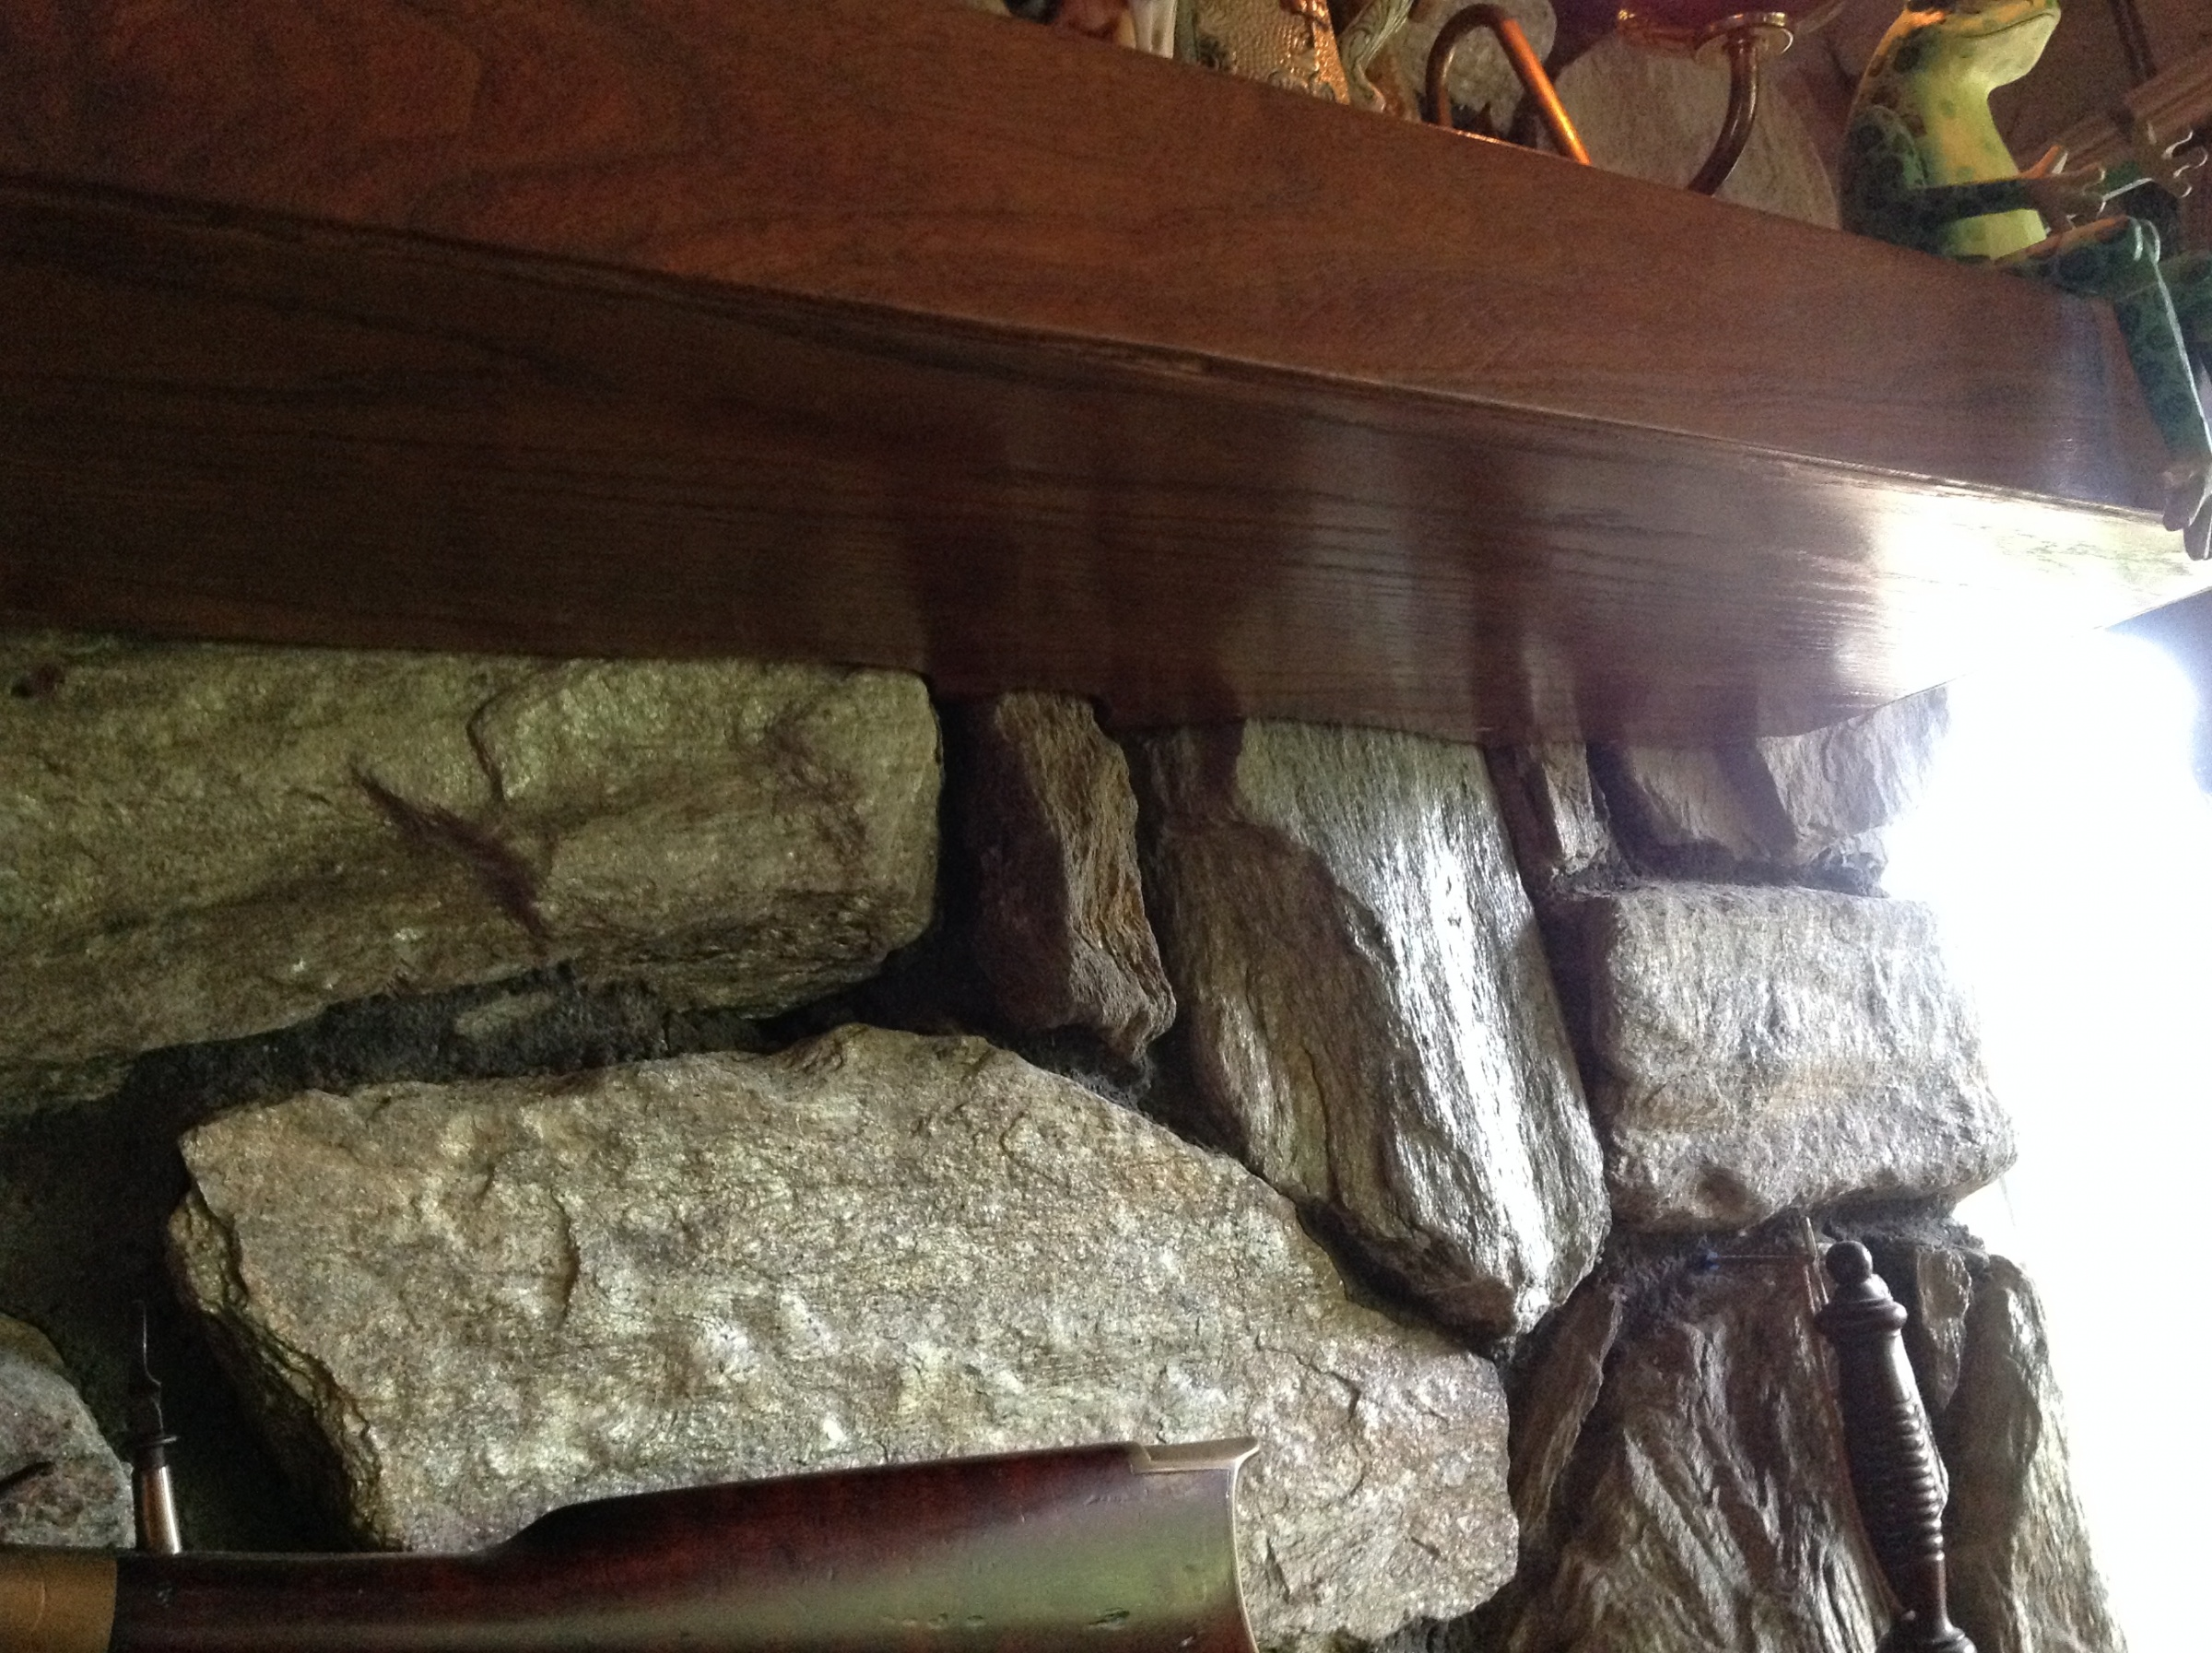 Not sure what to do about stone fireplace - Crown and baseboards.-image.jpg